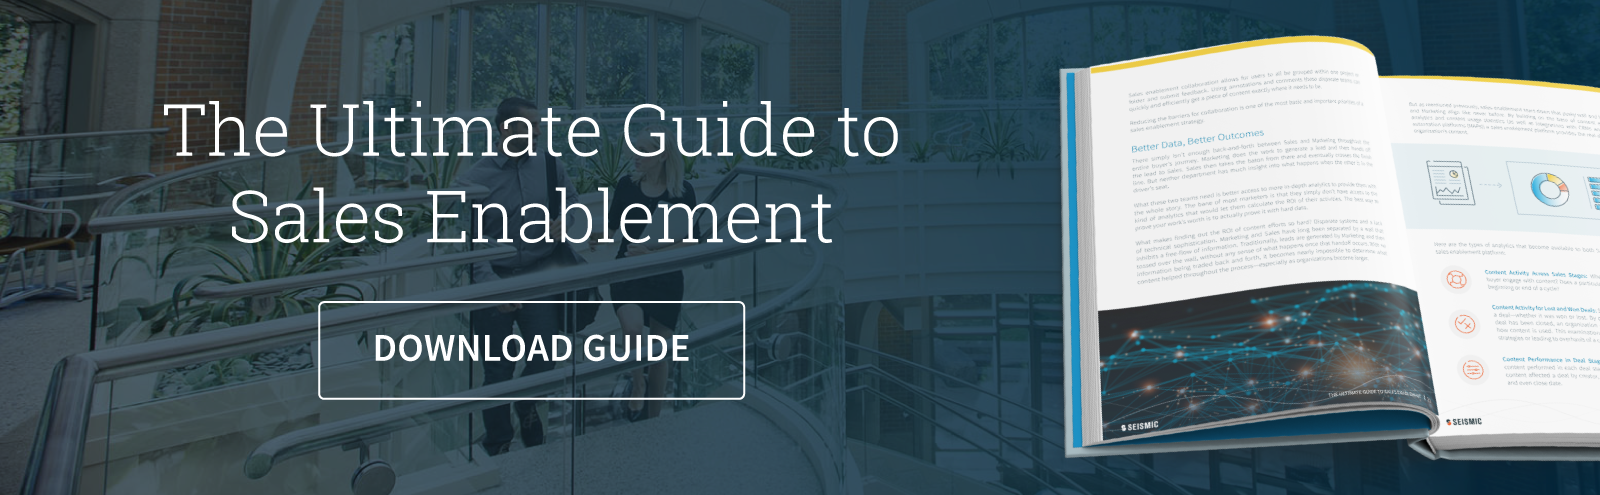 sales enablement definition, sales enablement best practices